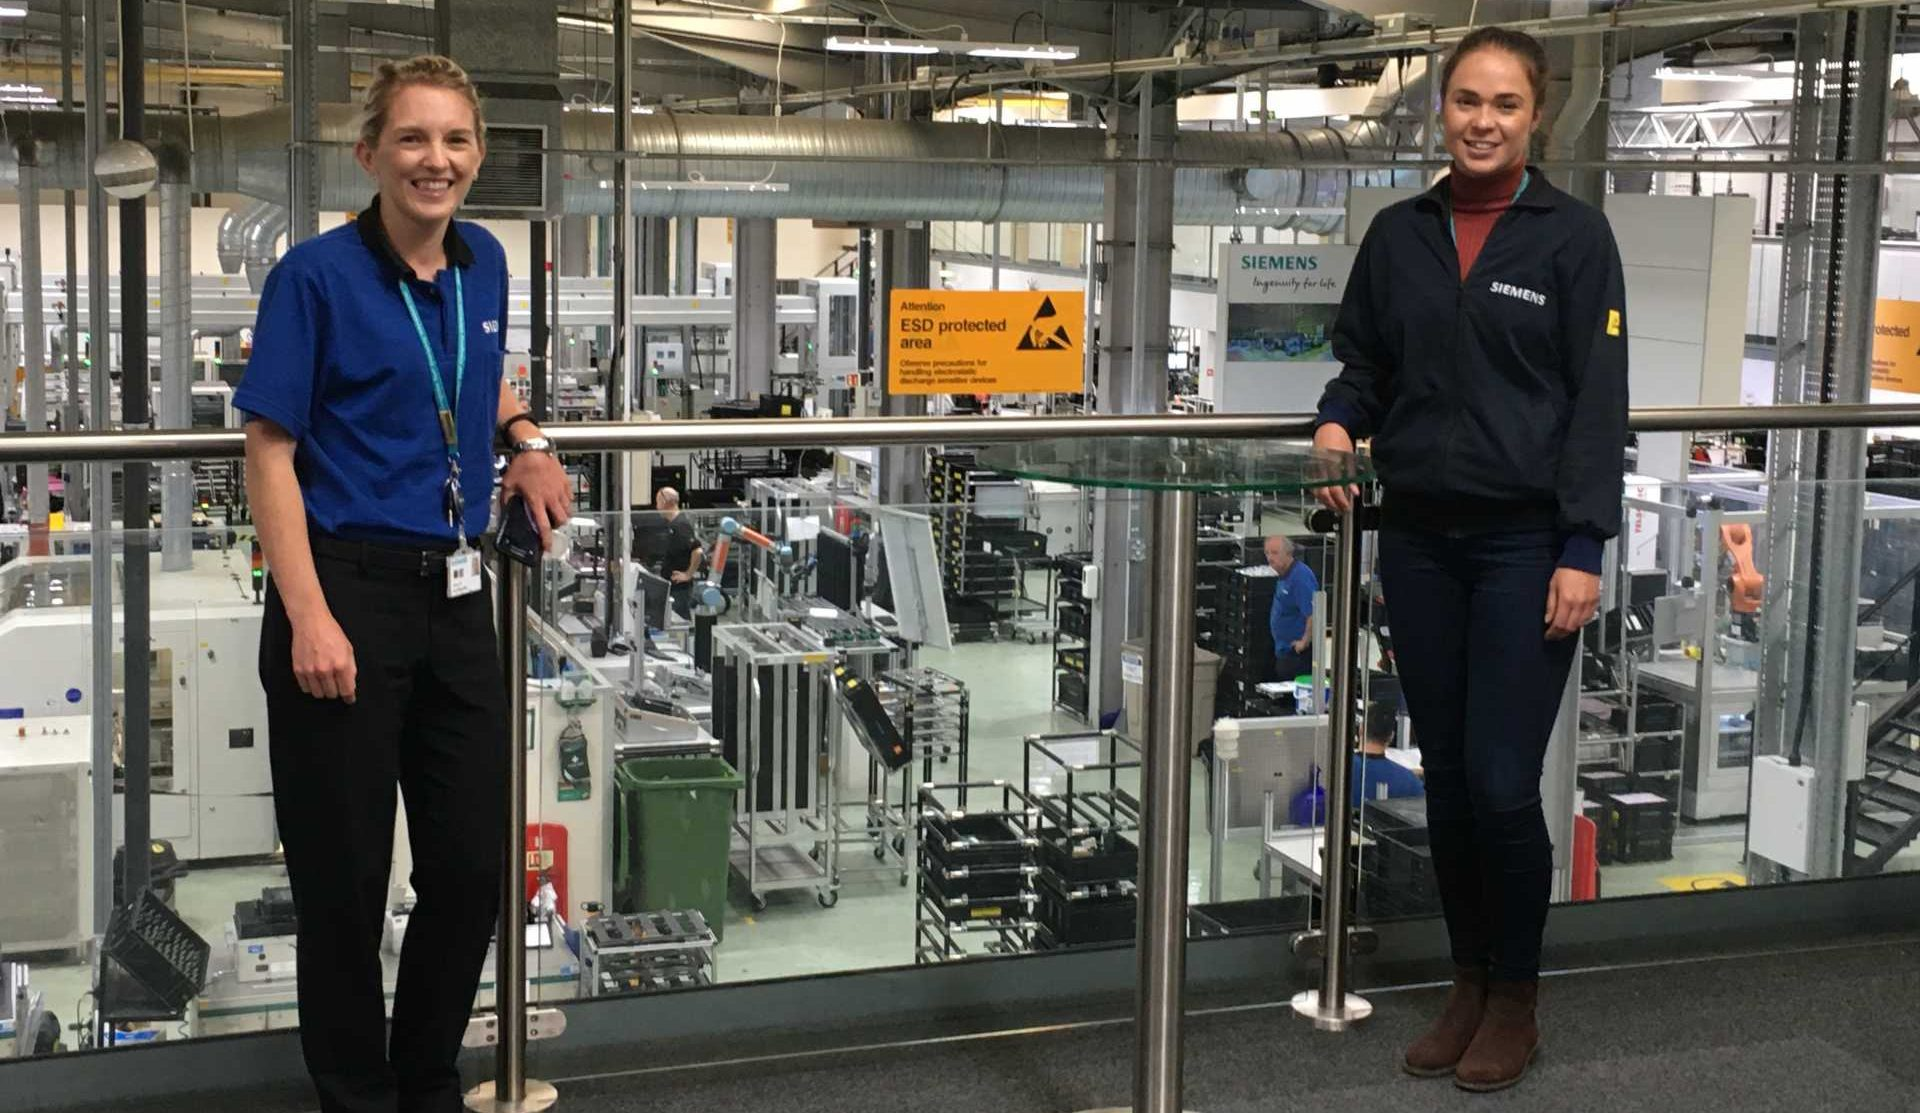 Sarah Black-Smith and Ashleigh Sumner at Siemens' Congleton Factory - image courtesy of Siemens